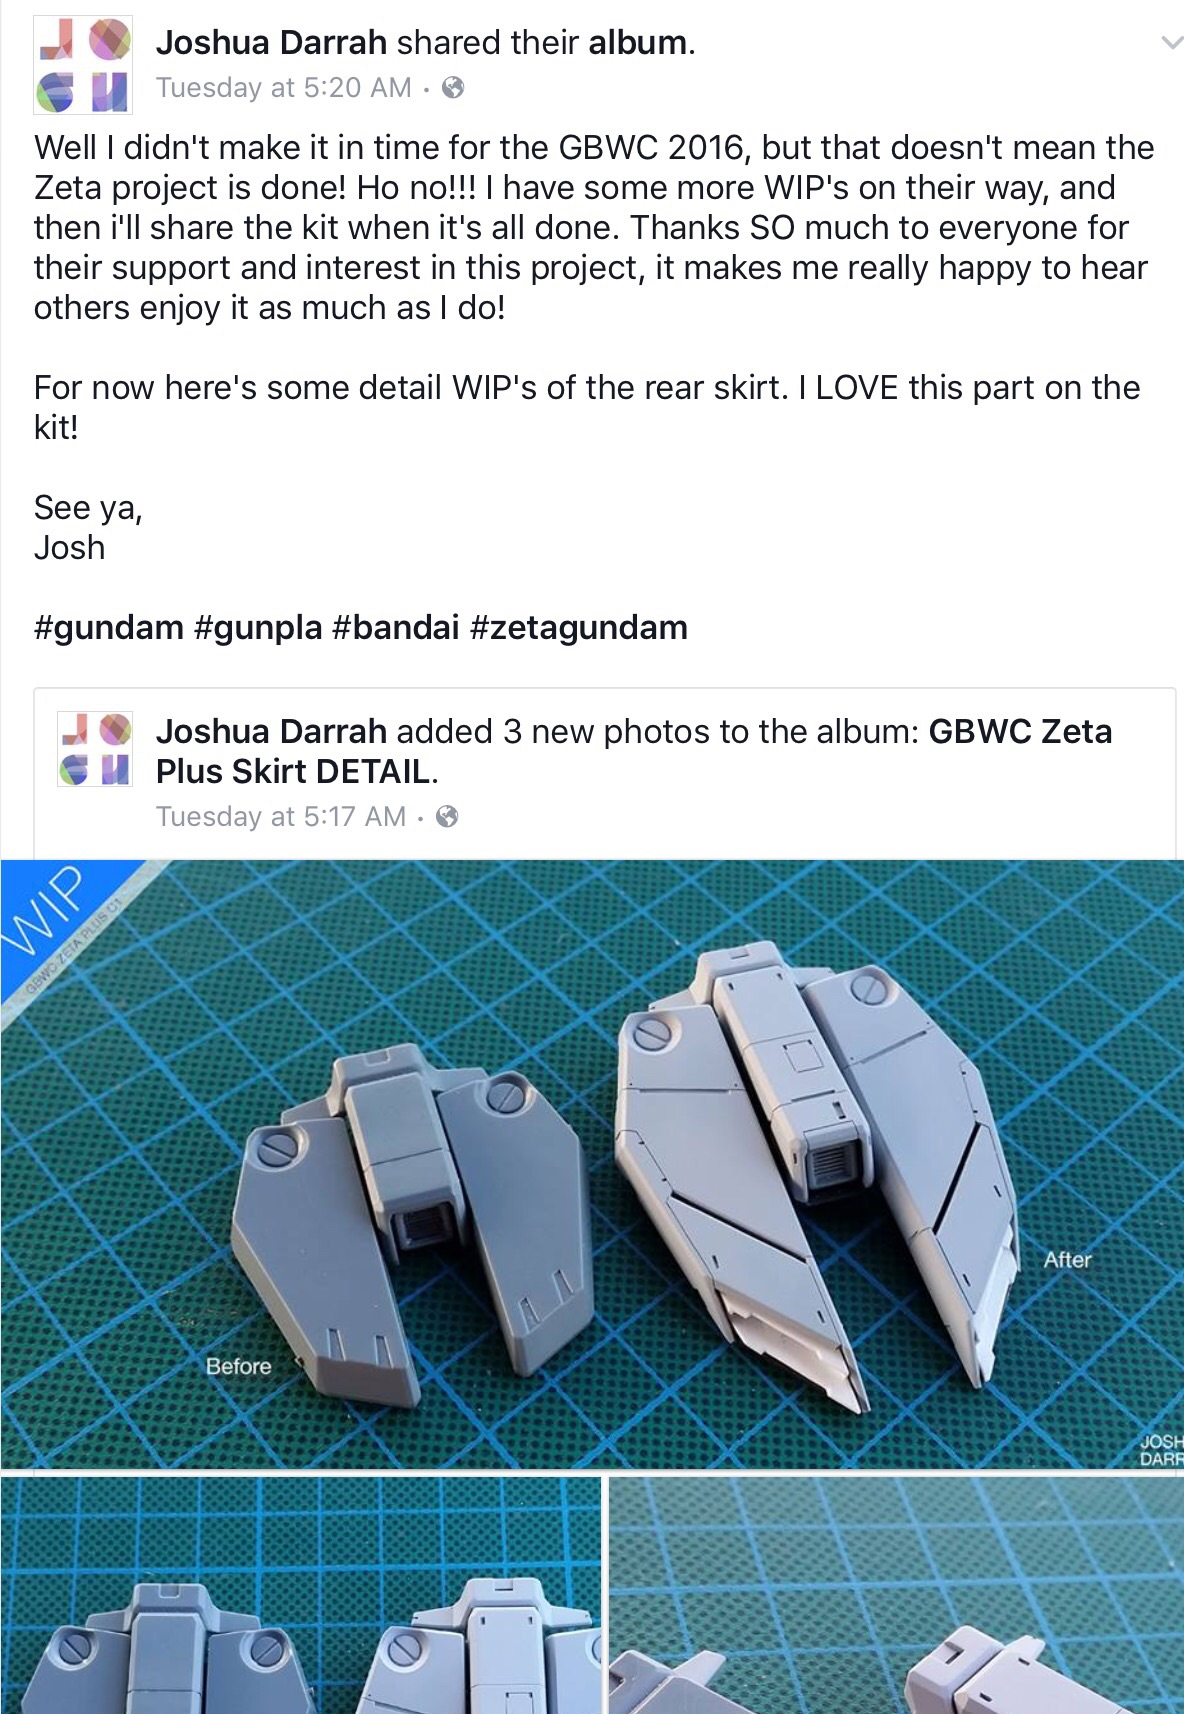 This post is oozing with enthusiasm, clear love of the hobby and an awesome display of skill.